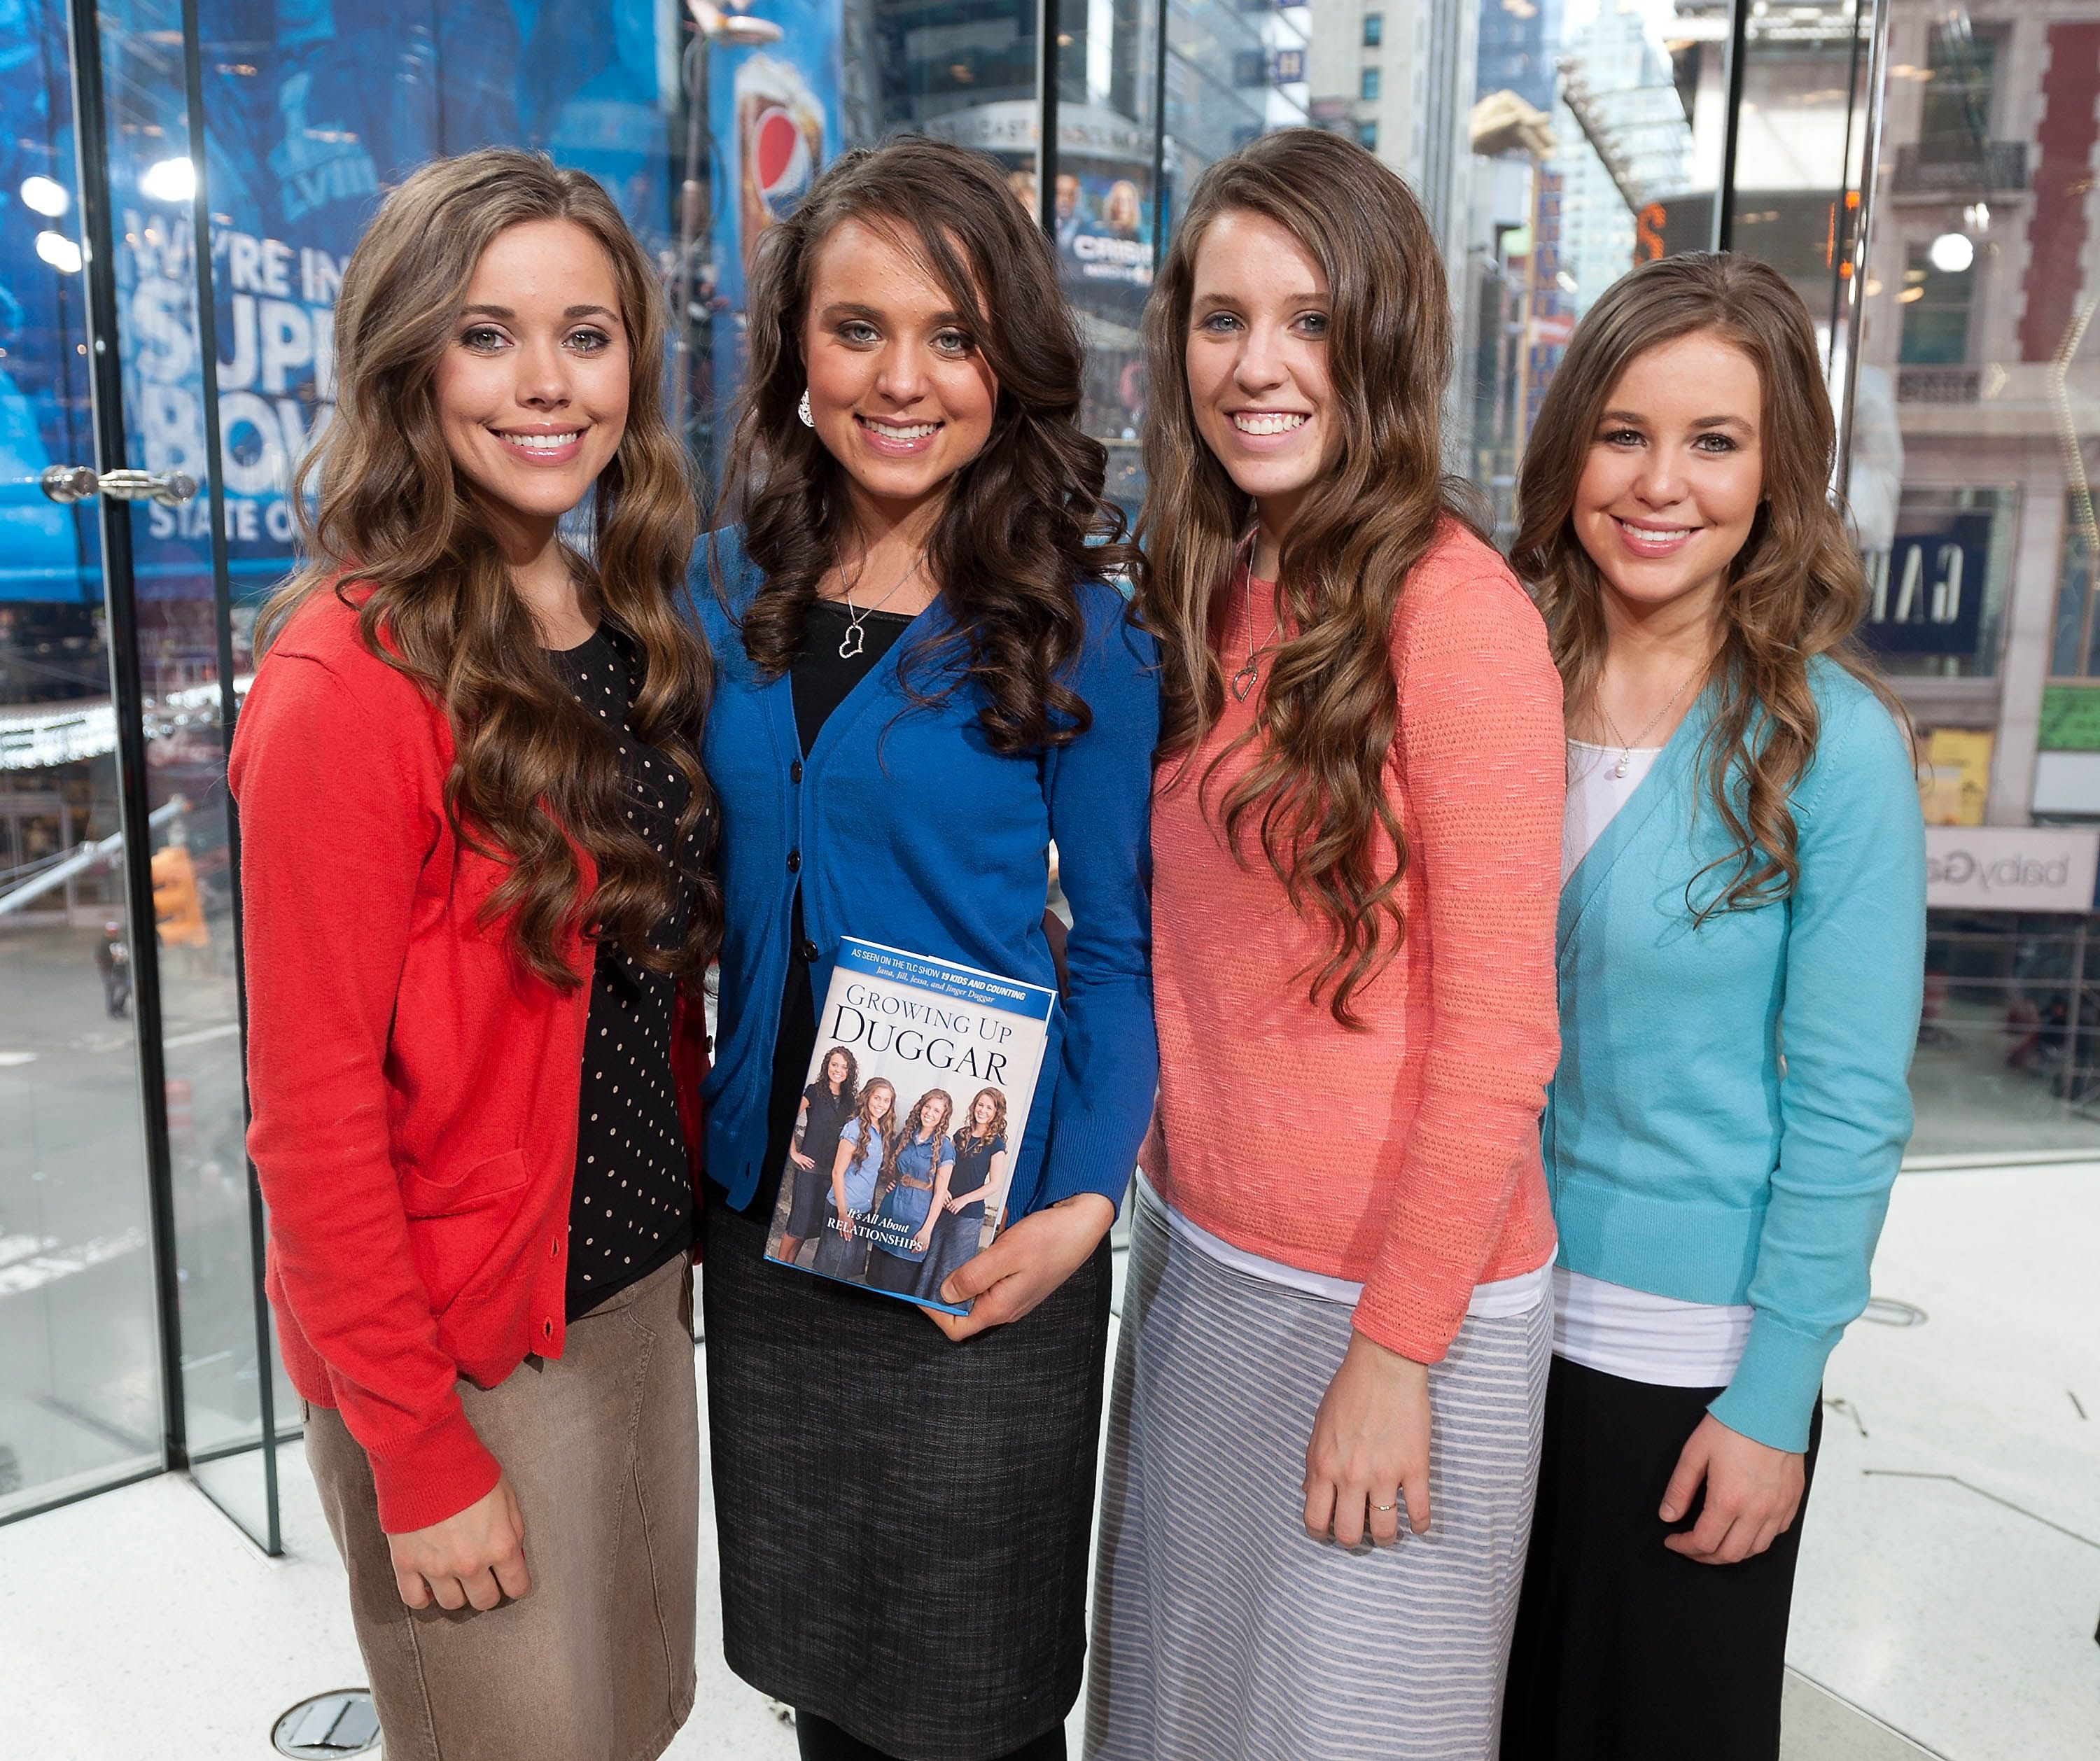 The Duggar daughters promoting their book